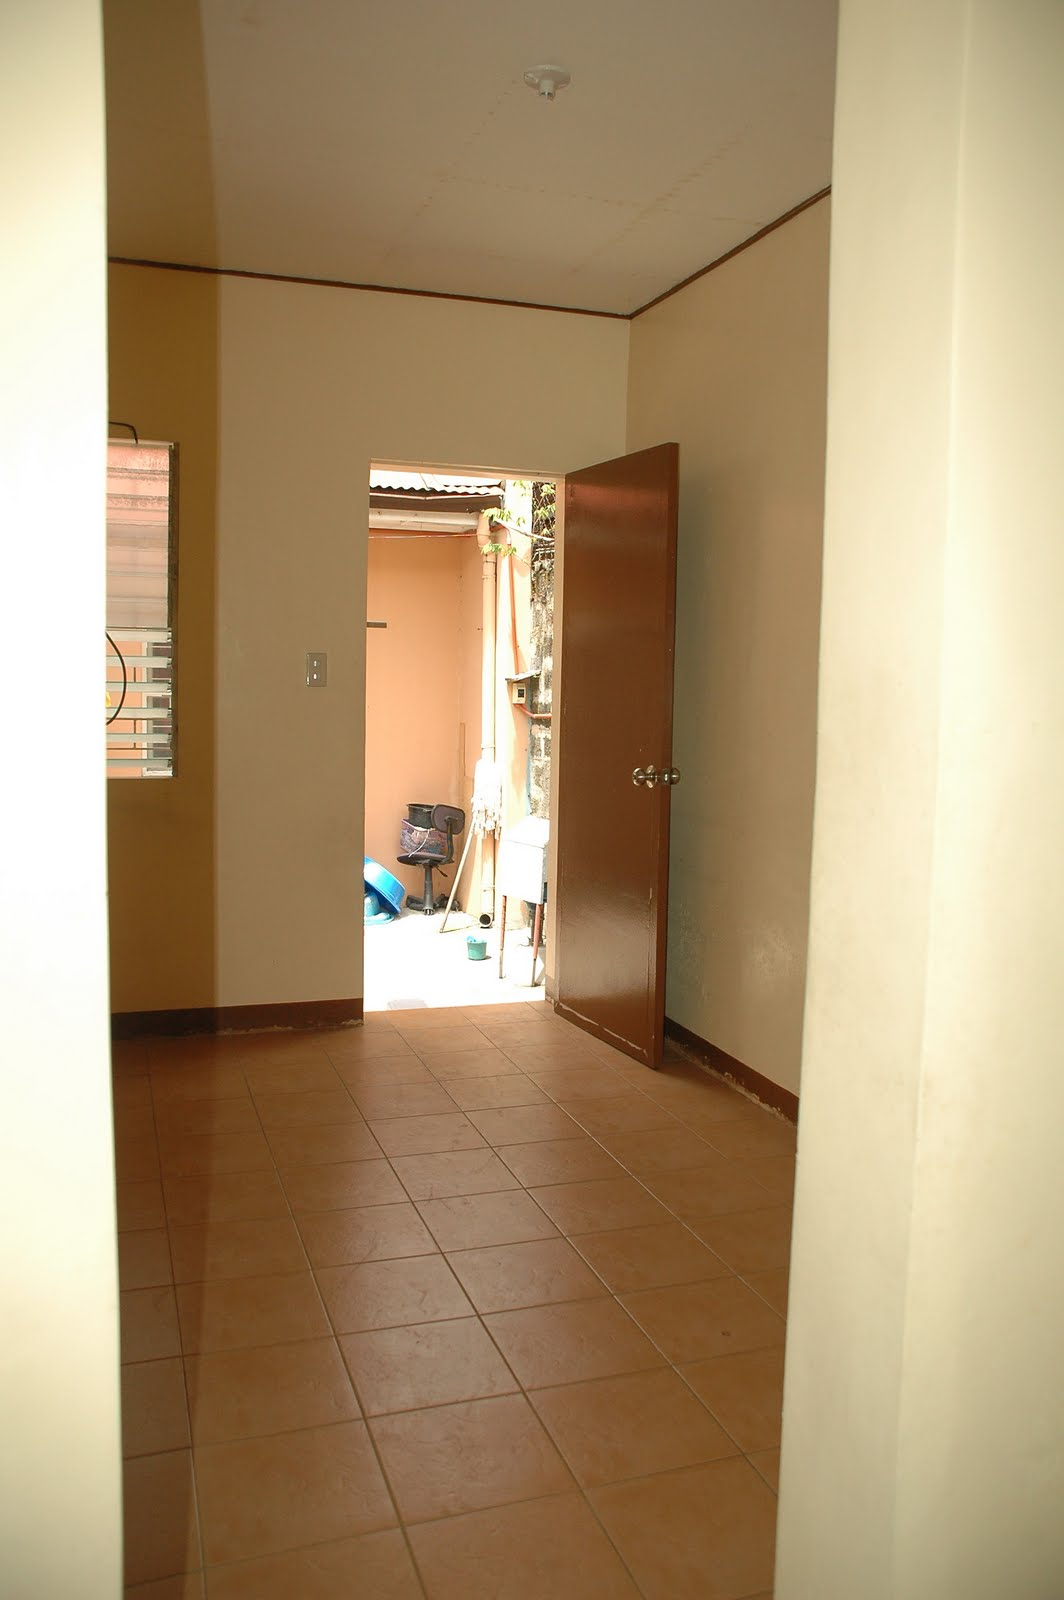 Apartment For Rent In Hanoi Cheap 1 Bedroom Apartment: Apartment For Rent In Muntinlupa City